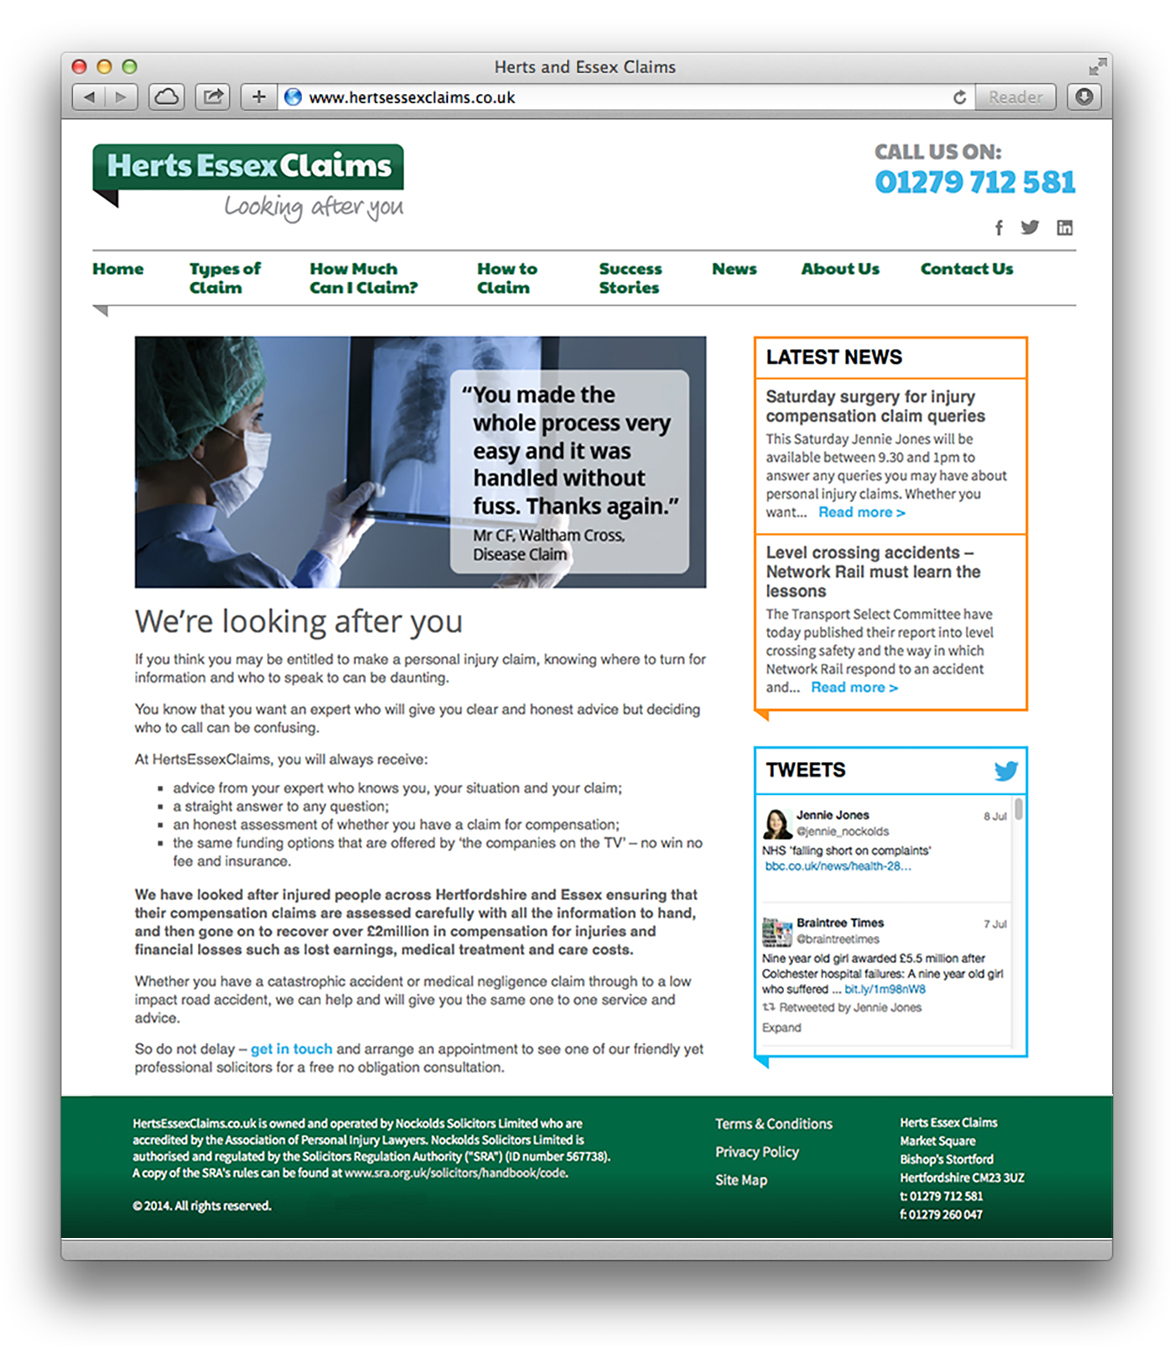 Herts Essex Claims Website - Homepage